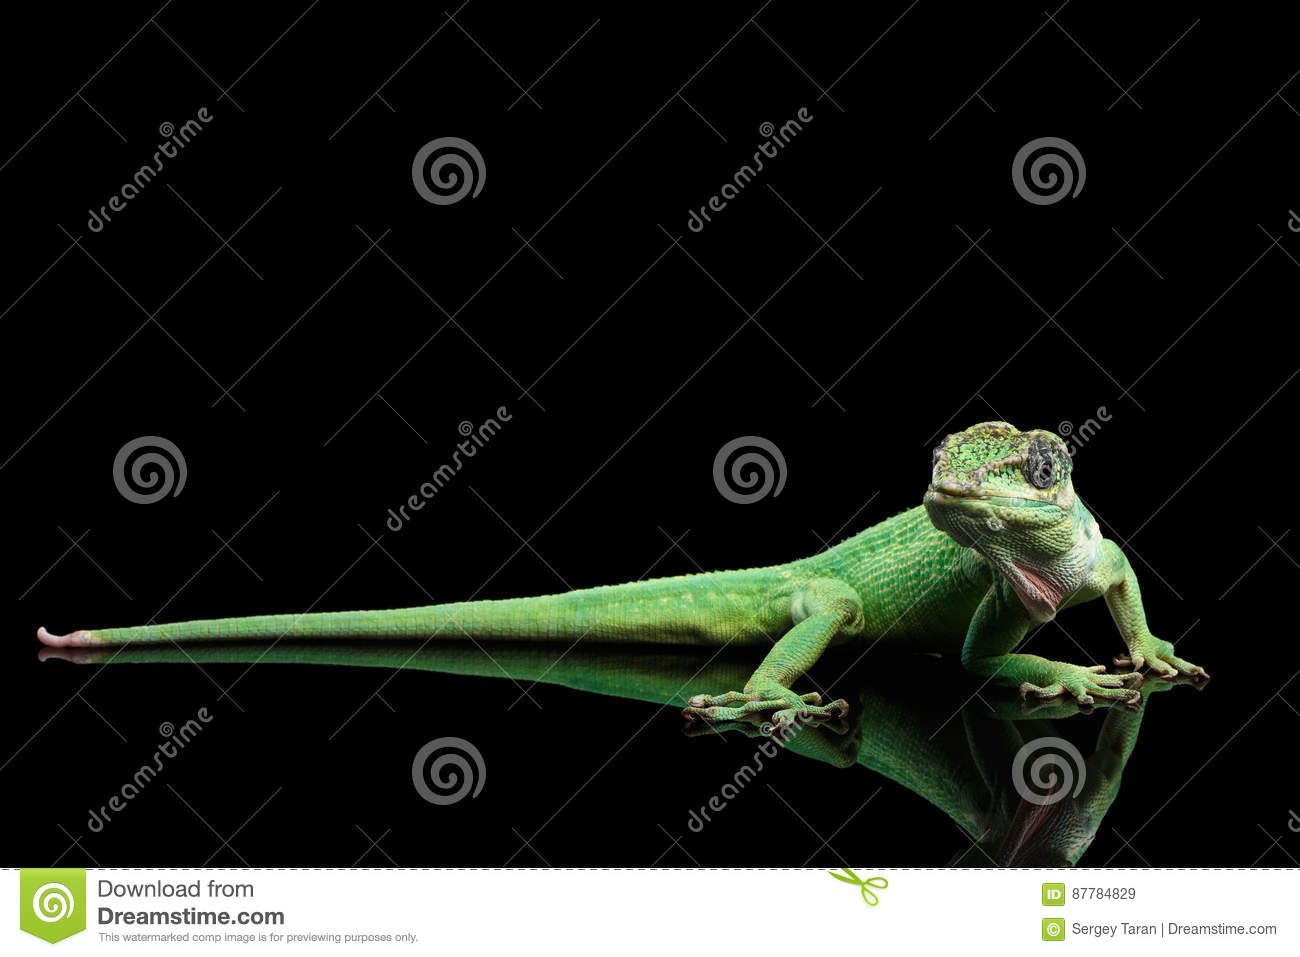 Knight anole lizard on Isolated Black Background